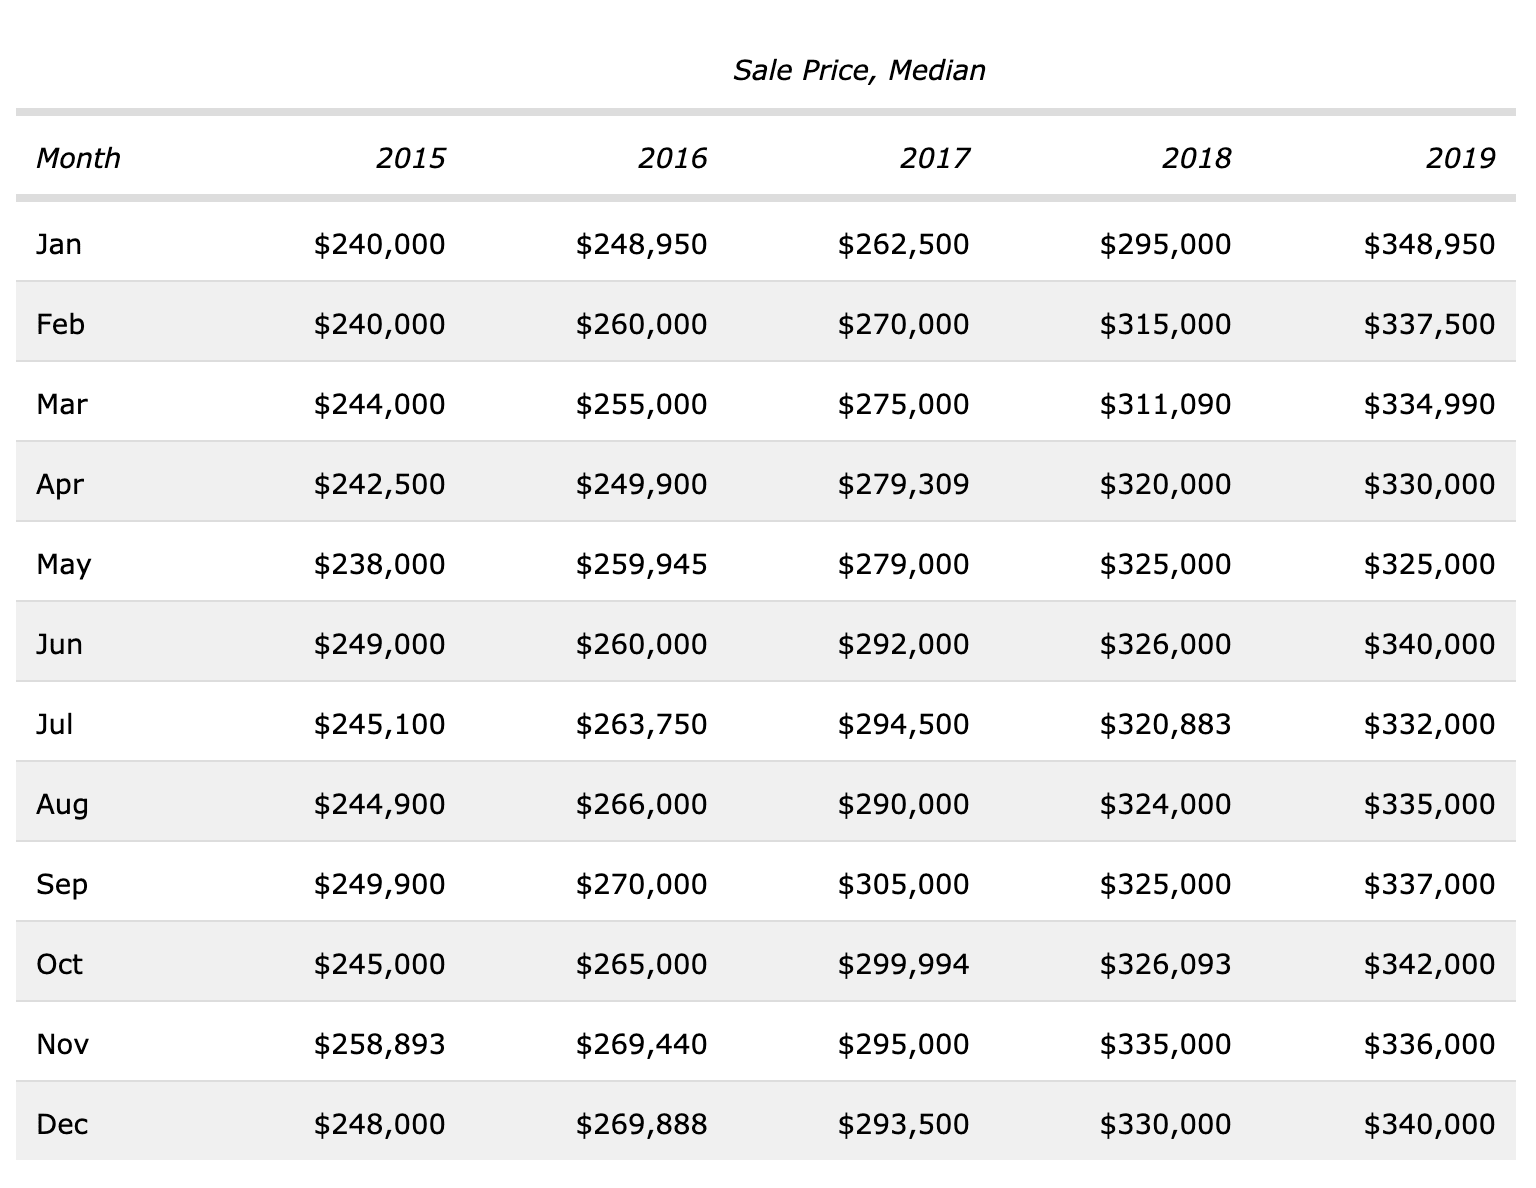 The southwest area of Las Vegas is booming. In December of 2015, the median home price for a single-family home in the Southwest part of Las Vegas was $248,000. In December 2018, the median sales price for a single-family property in Southwest Las Vegas was $340,000.